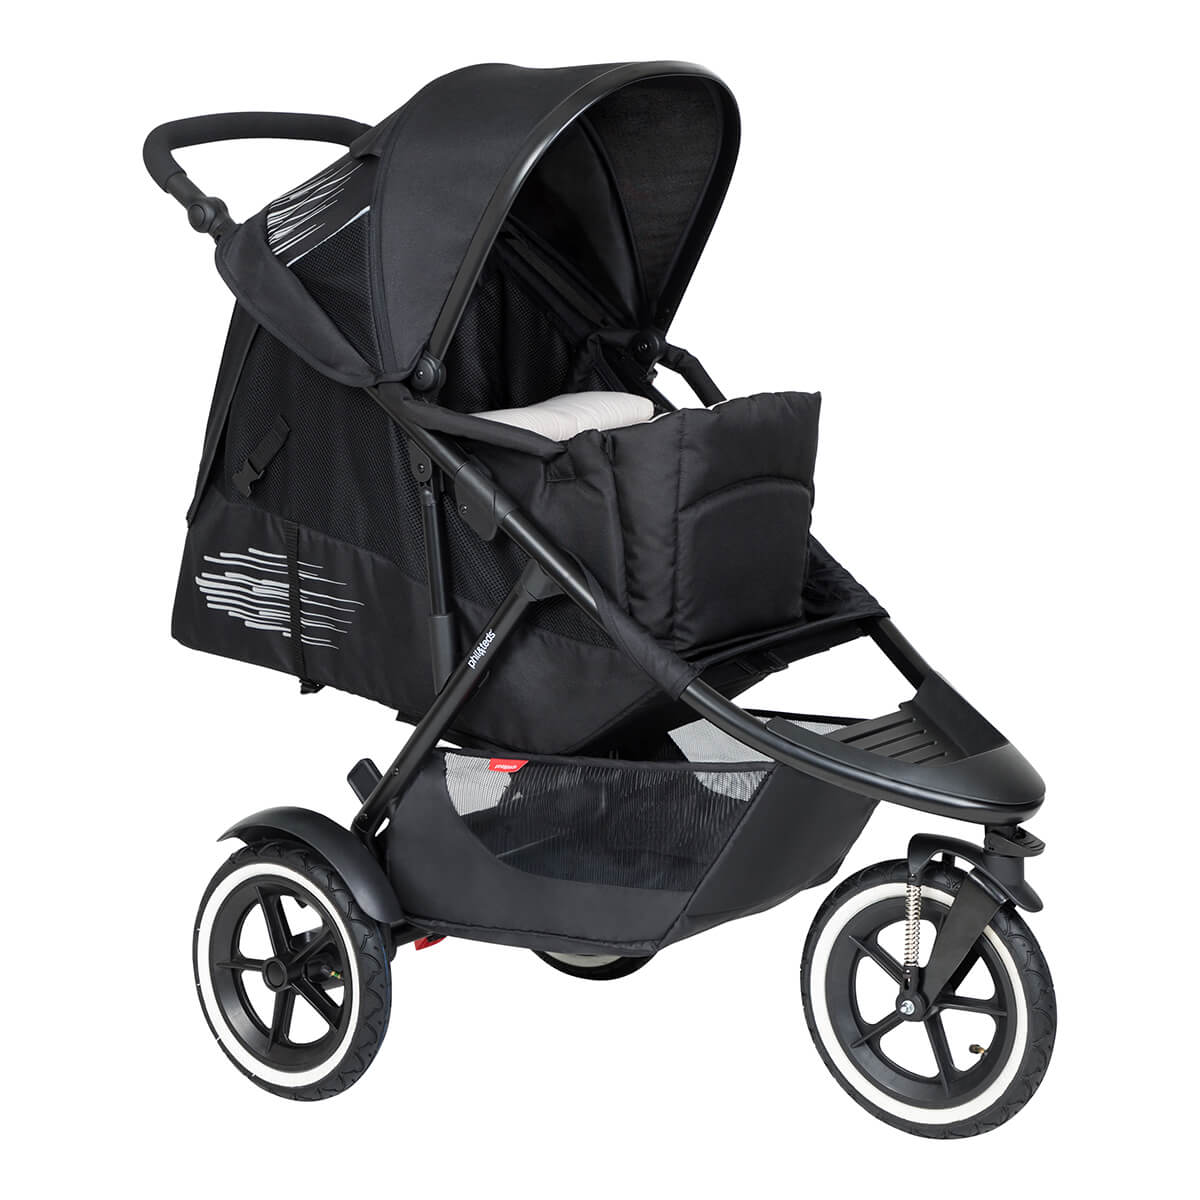 https://cdn.accentuate.io/4509527408728/19272668119128/philteds-sport-poussette-with-cocoon-full-recline-v1626484342428.jpg?1200x1200